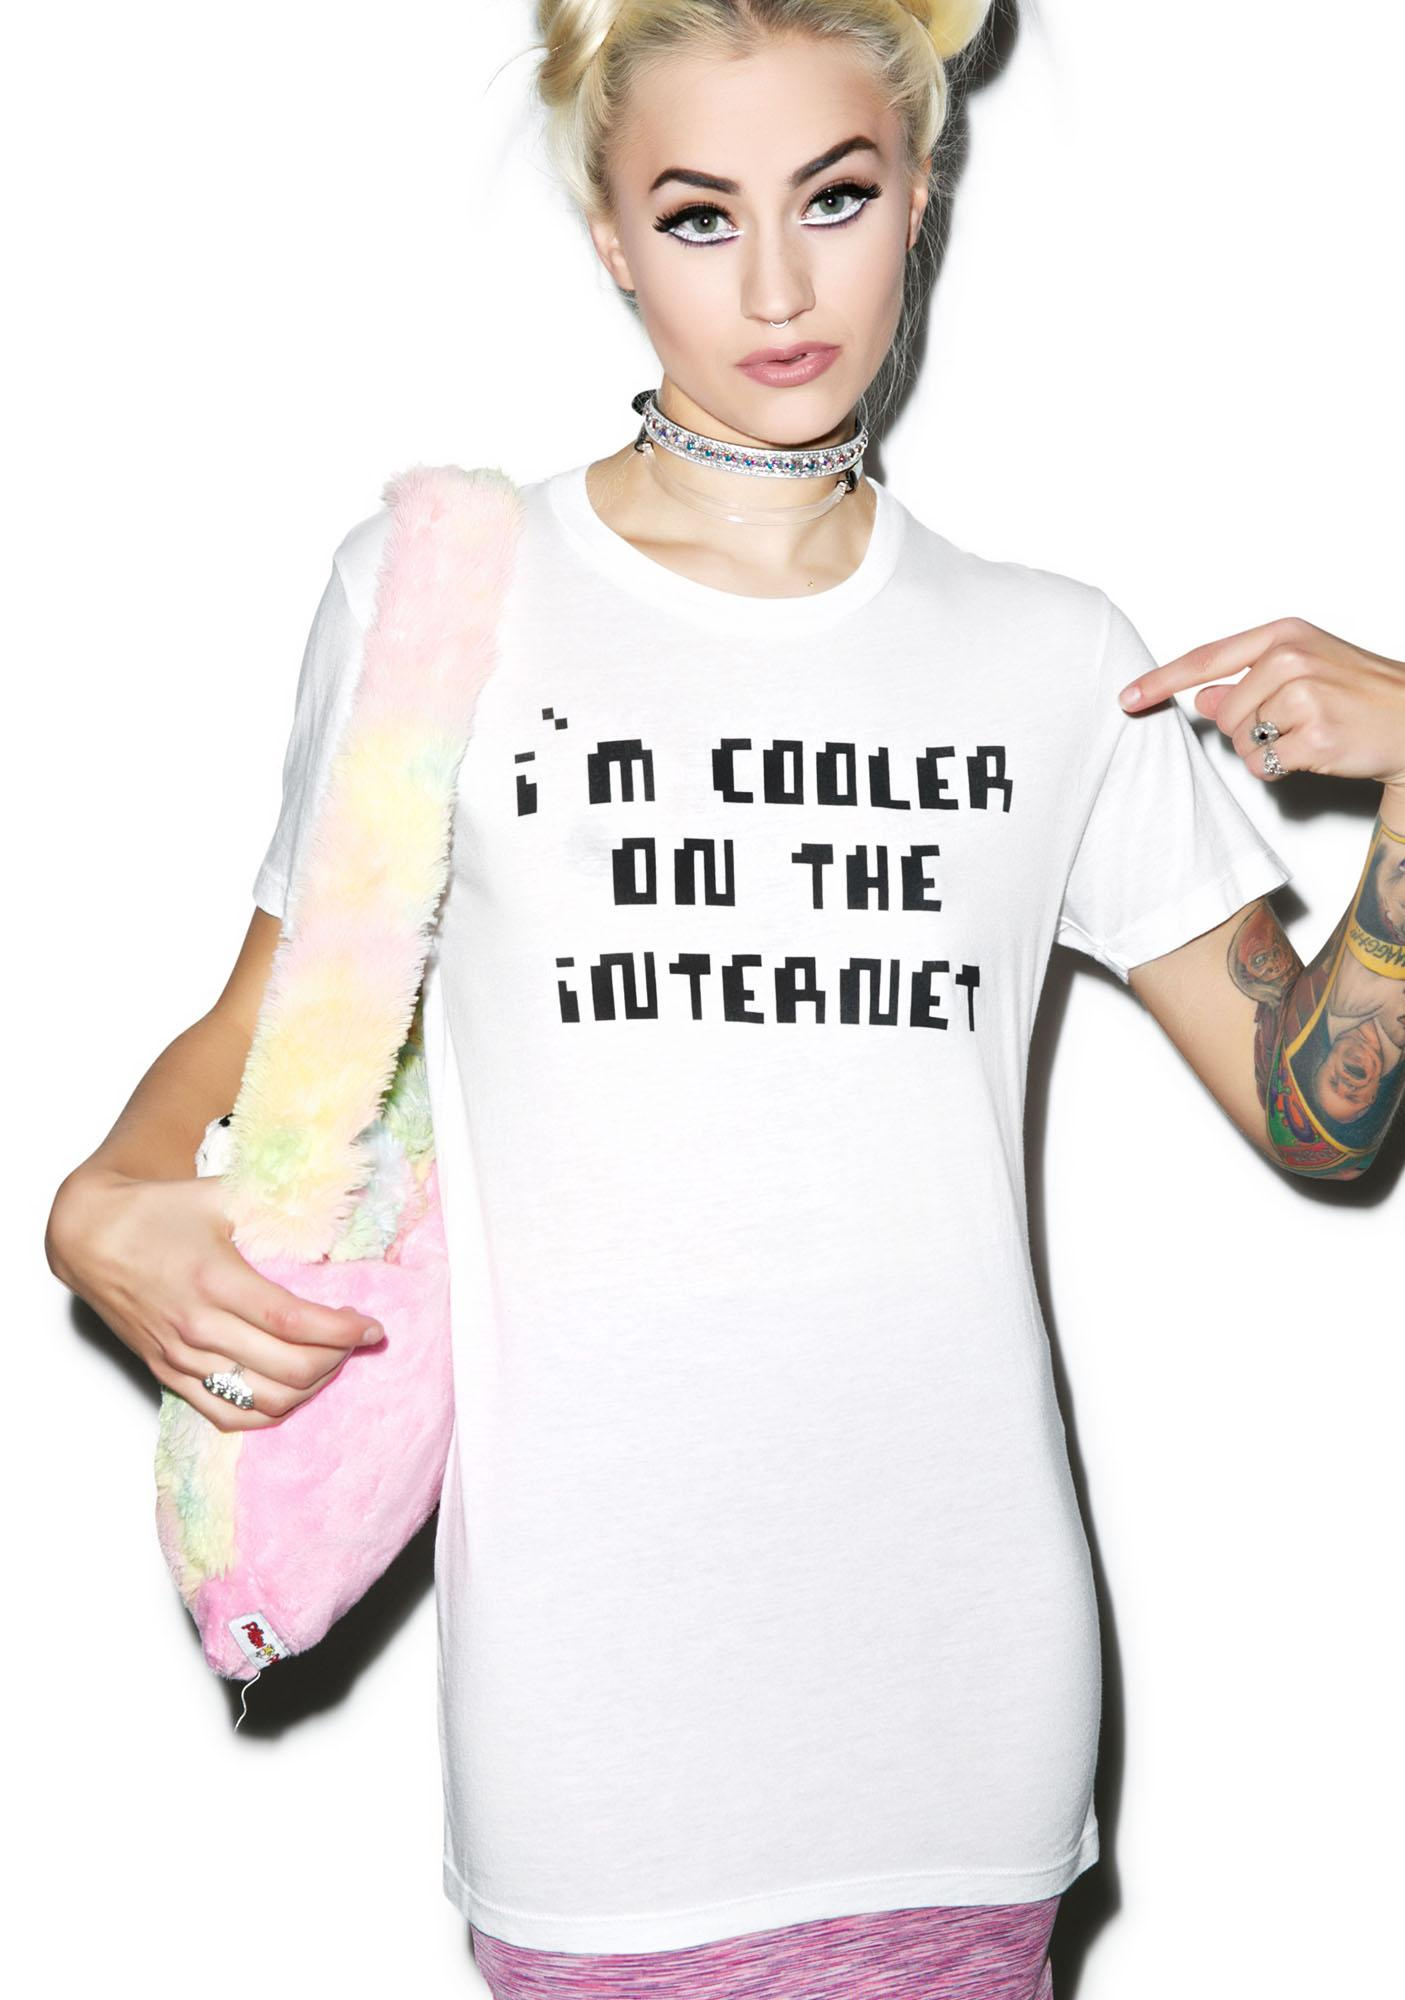 Cooler On The Internet Tee